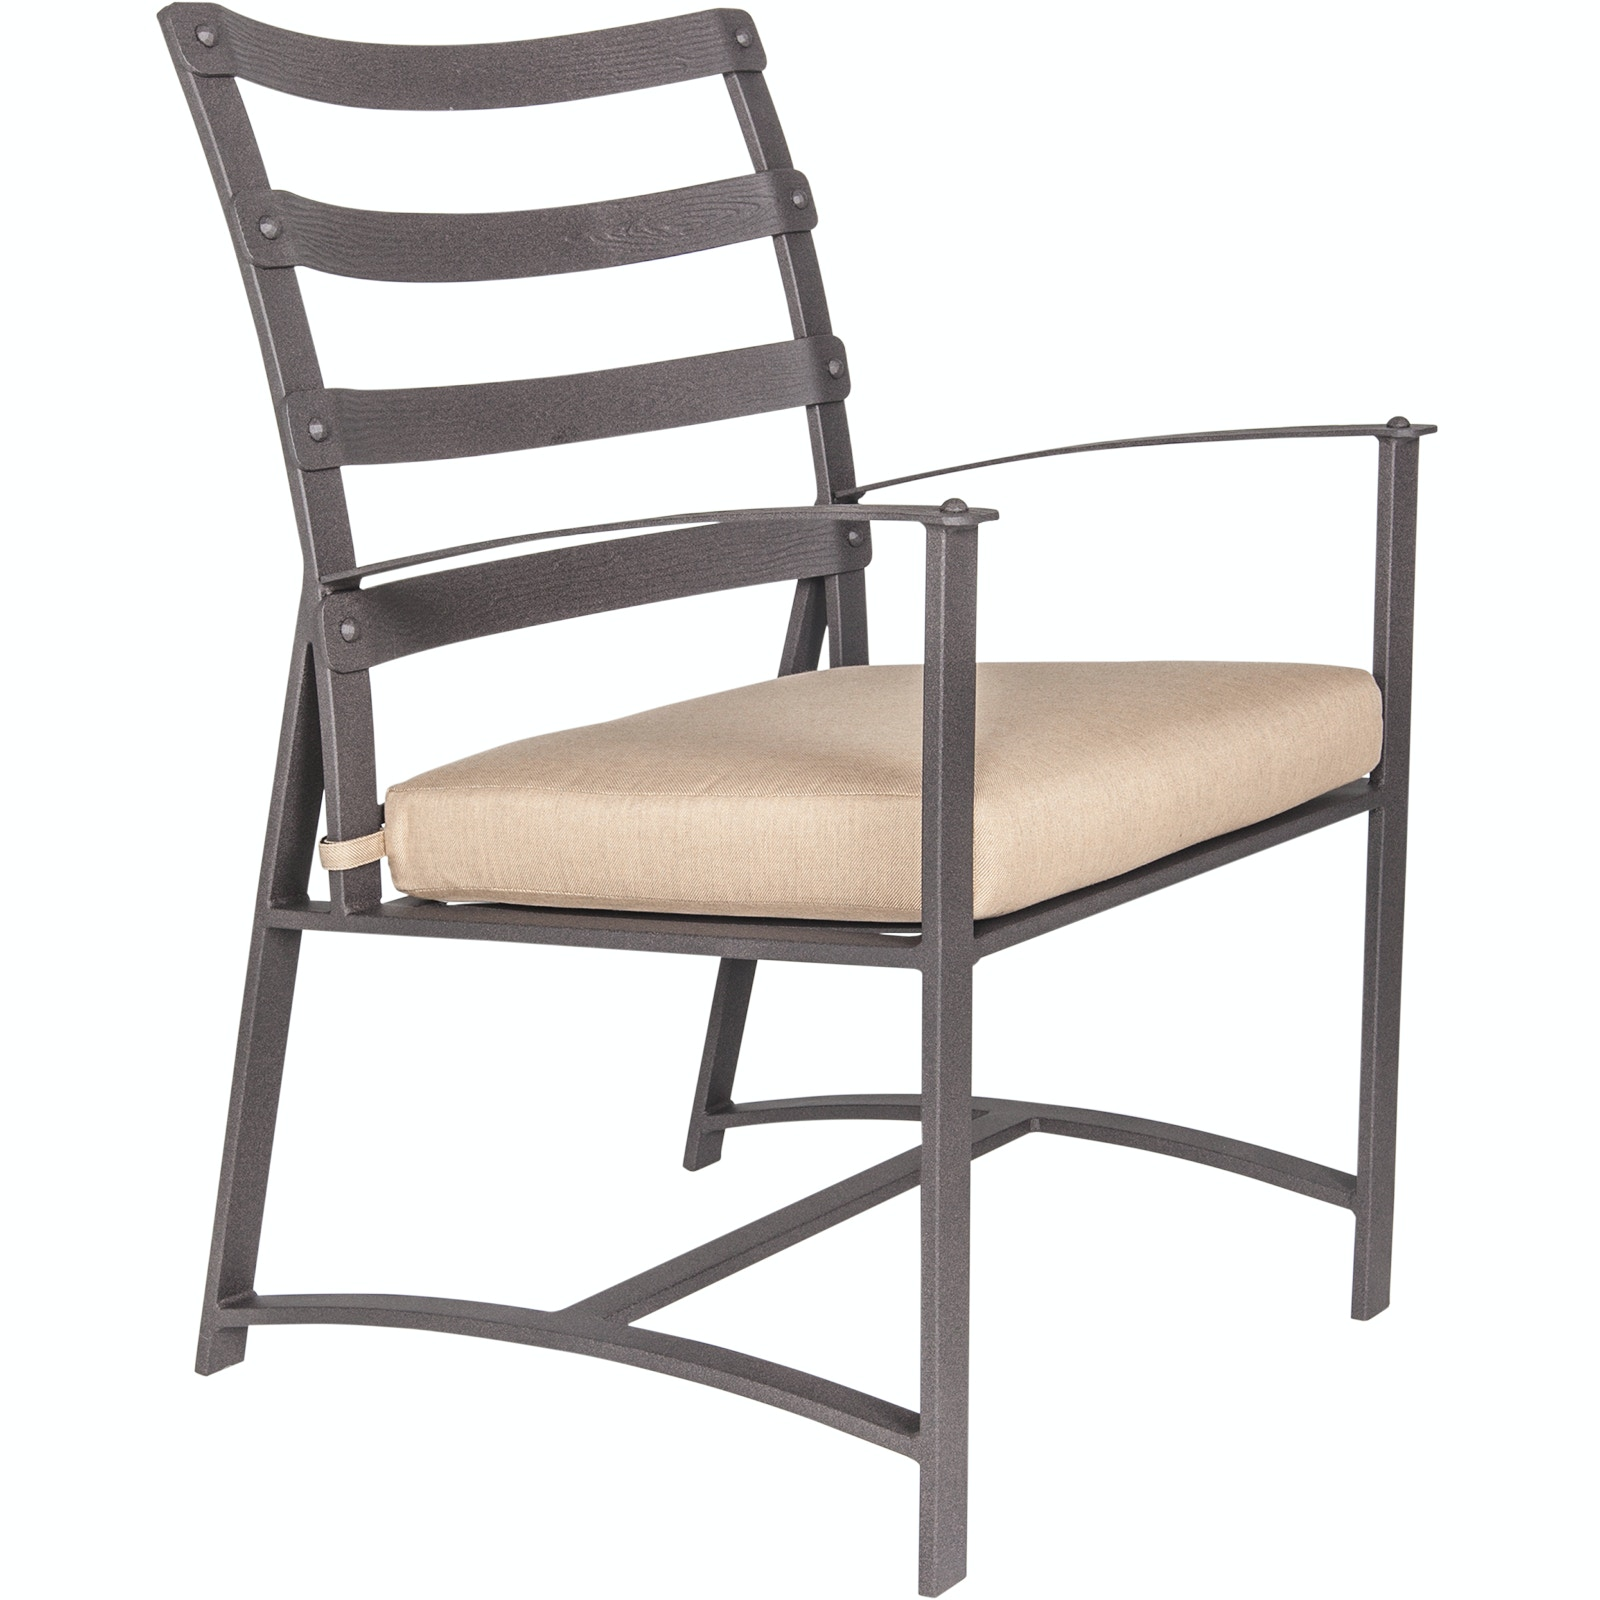 OW Lee Furniture Ridgewood Dining Arm Chair 7353 A